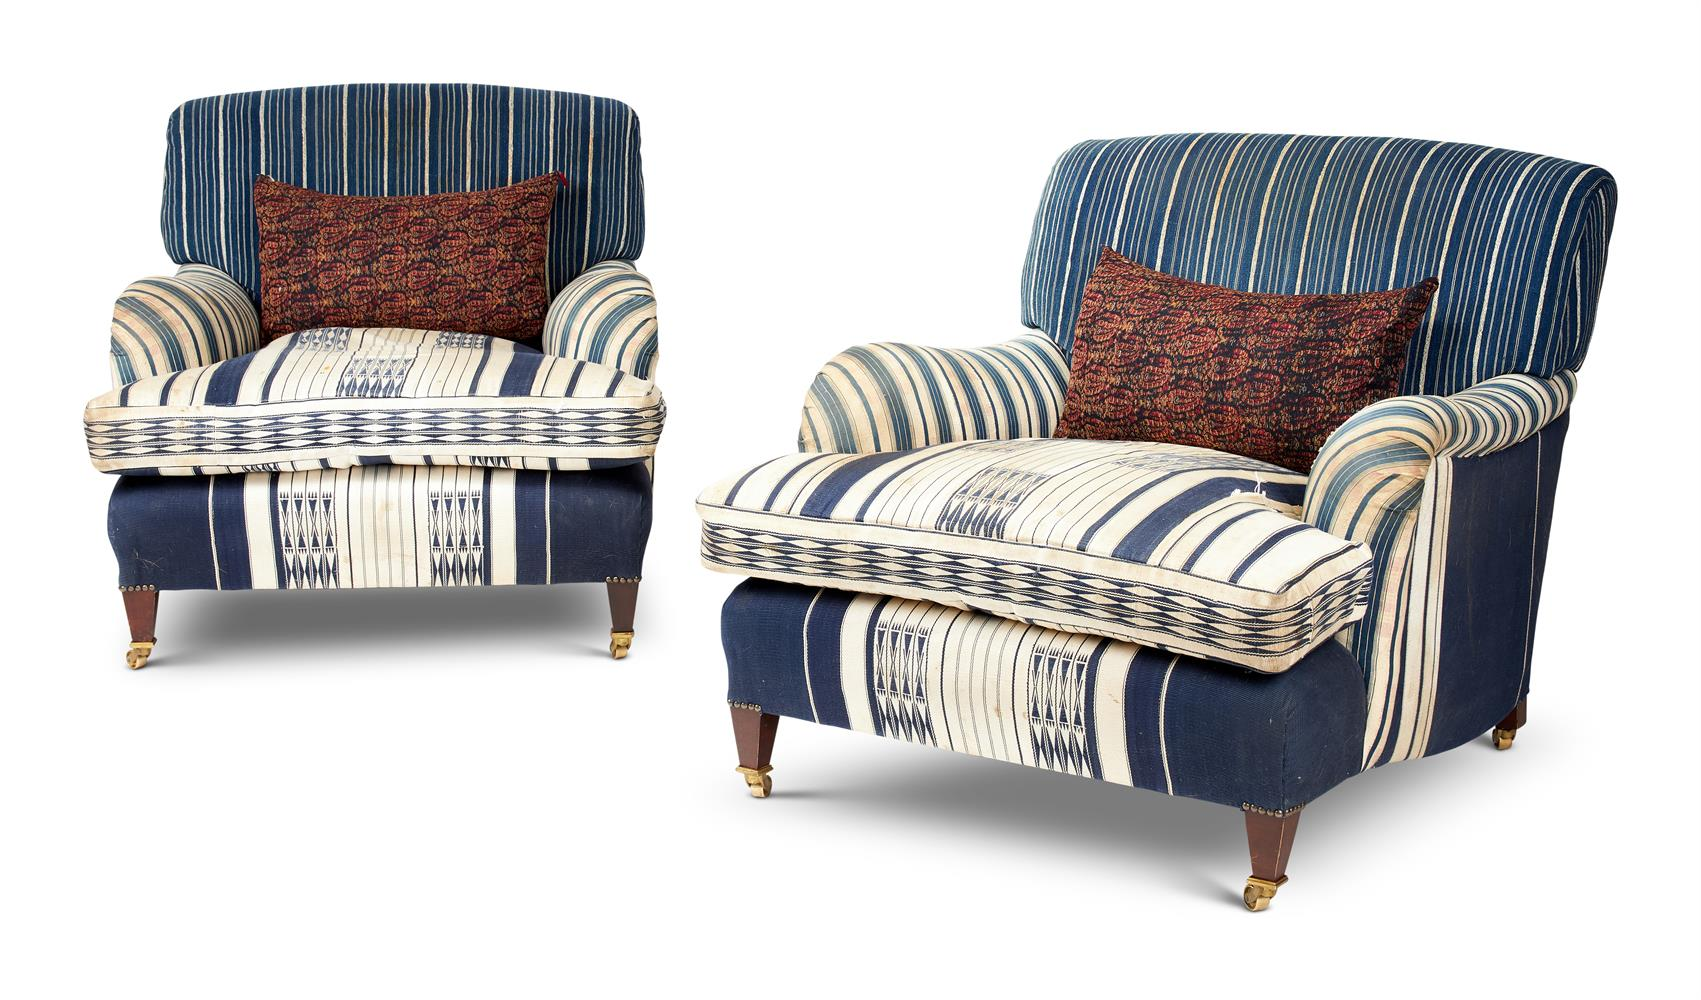 A PAIR OF HOWARD & SONS SYTLE UPHOLSTERED EASY CHAIRS - Image 2 of 2